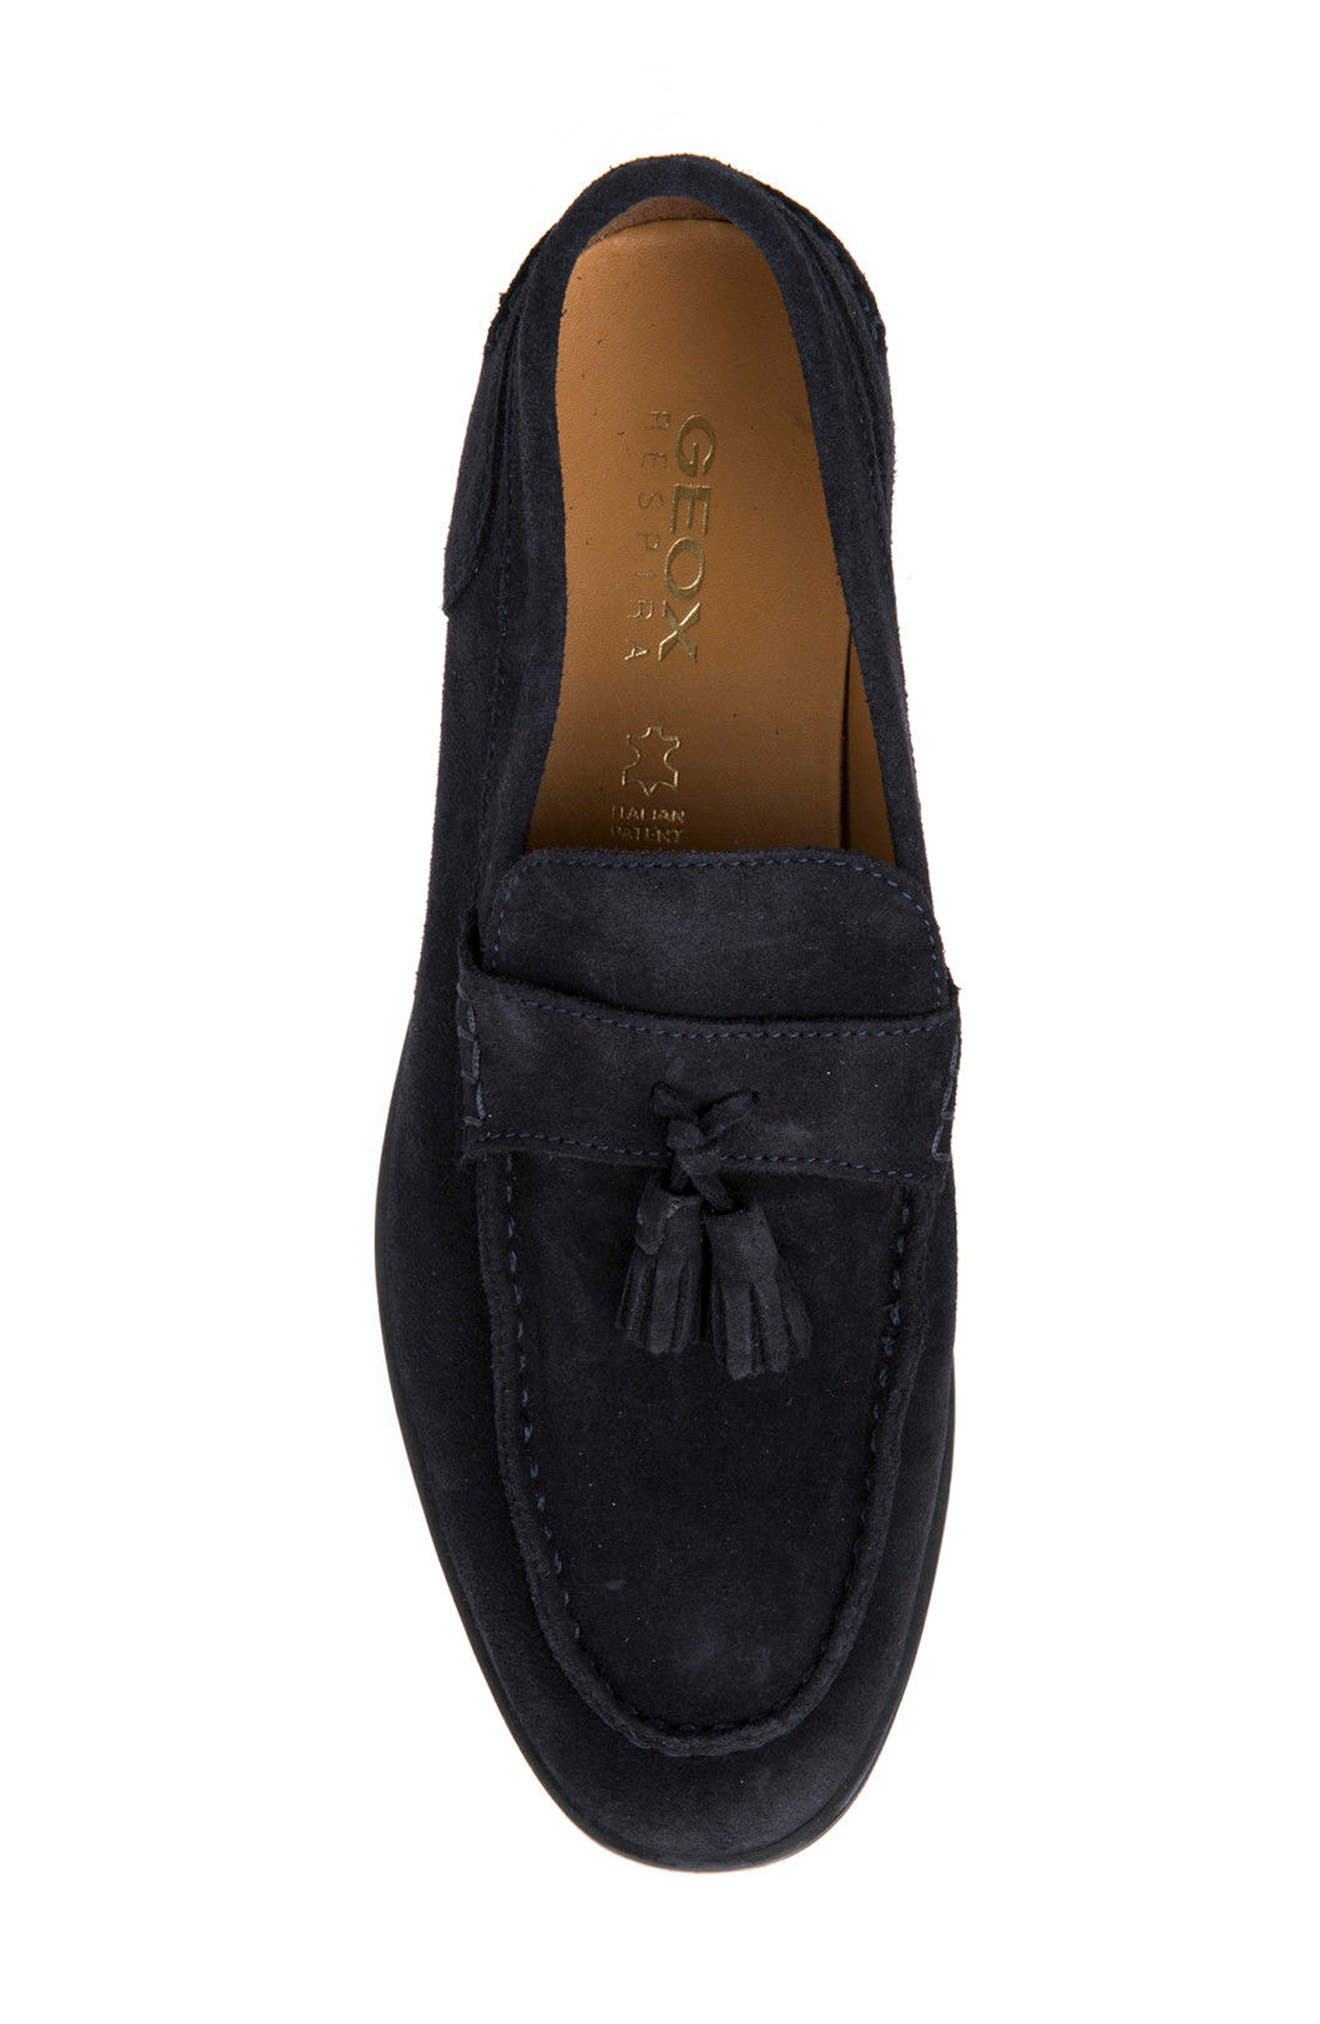 Bryceton 1 Tassel Loafer,                             Alternate thumbnail 5, color,                             Navy Suede